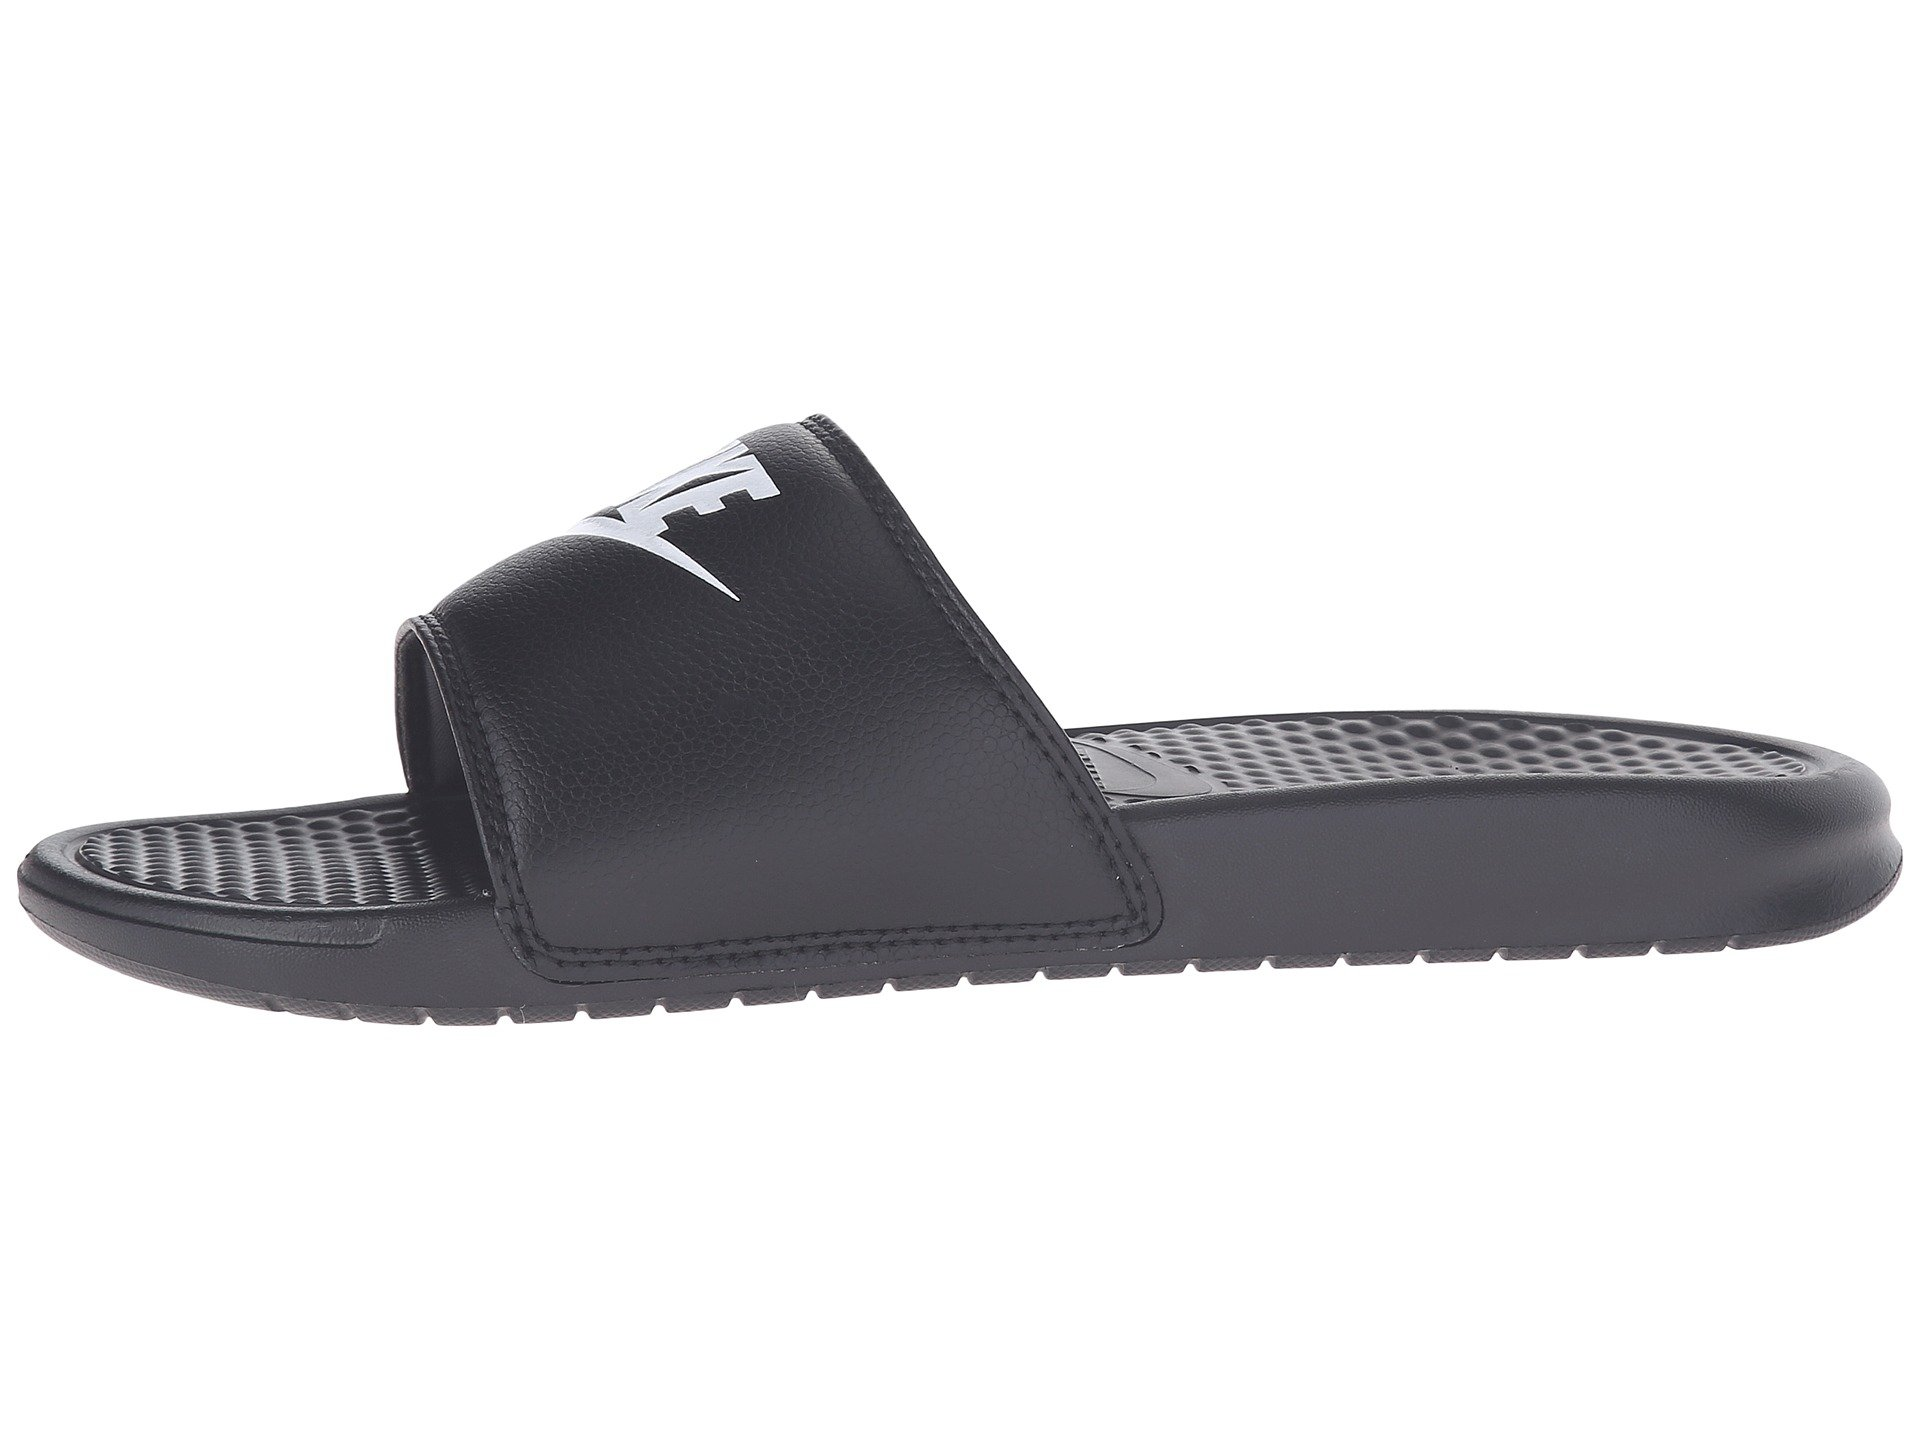 online retailer bc030 971b3 nike benassi jdi slides black and white